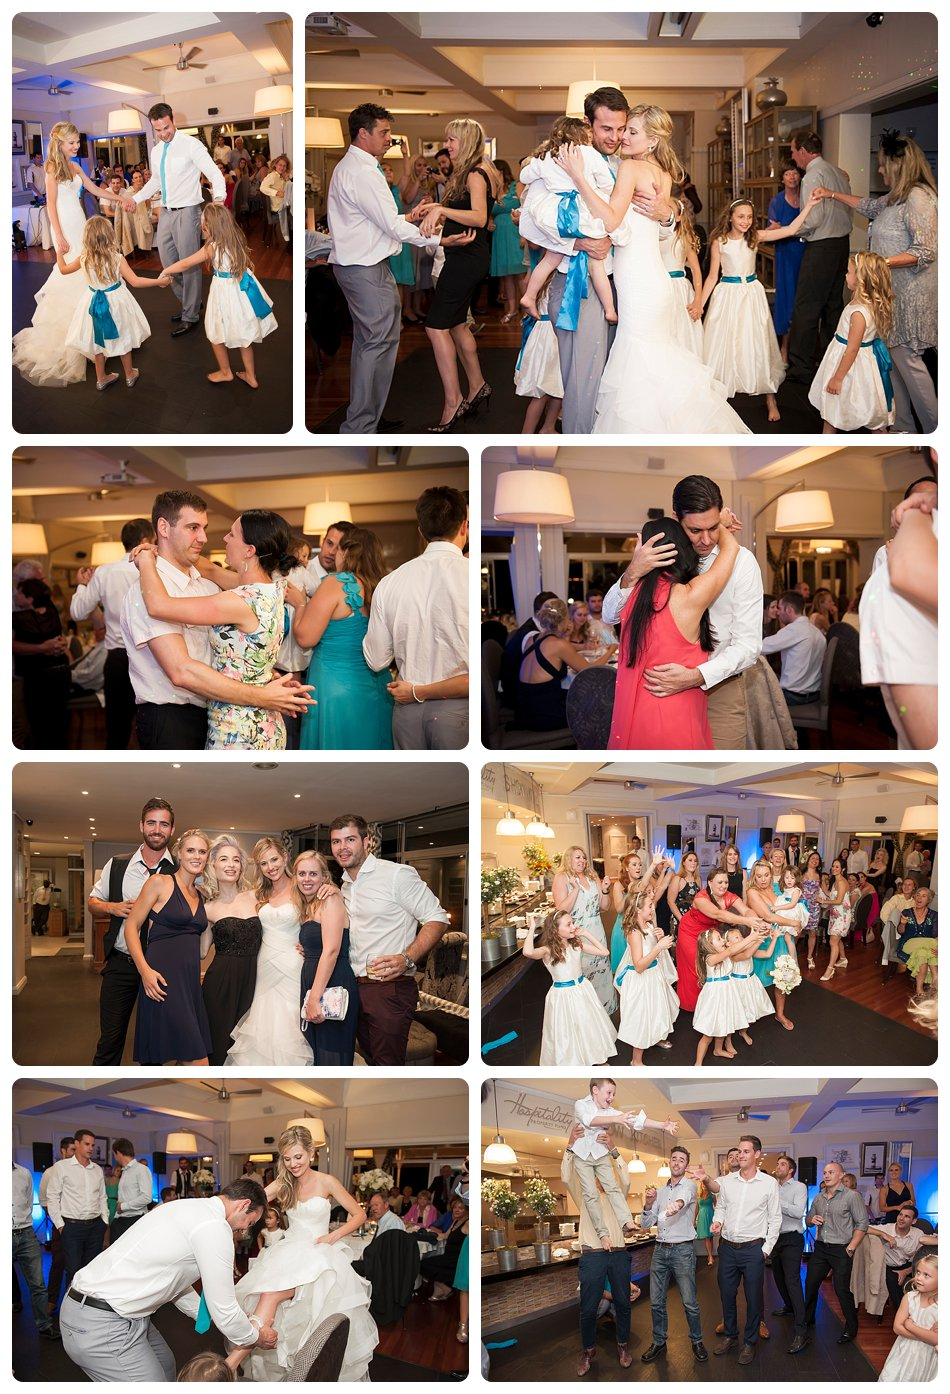 wedding-cape-town-joanne-markland-photography-grangerbay-Paul-jenny-0056